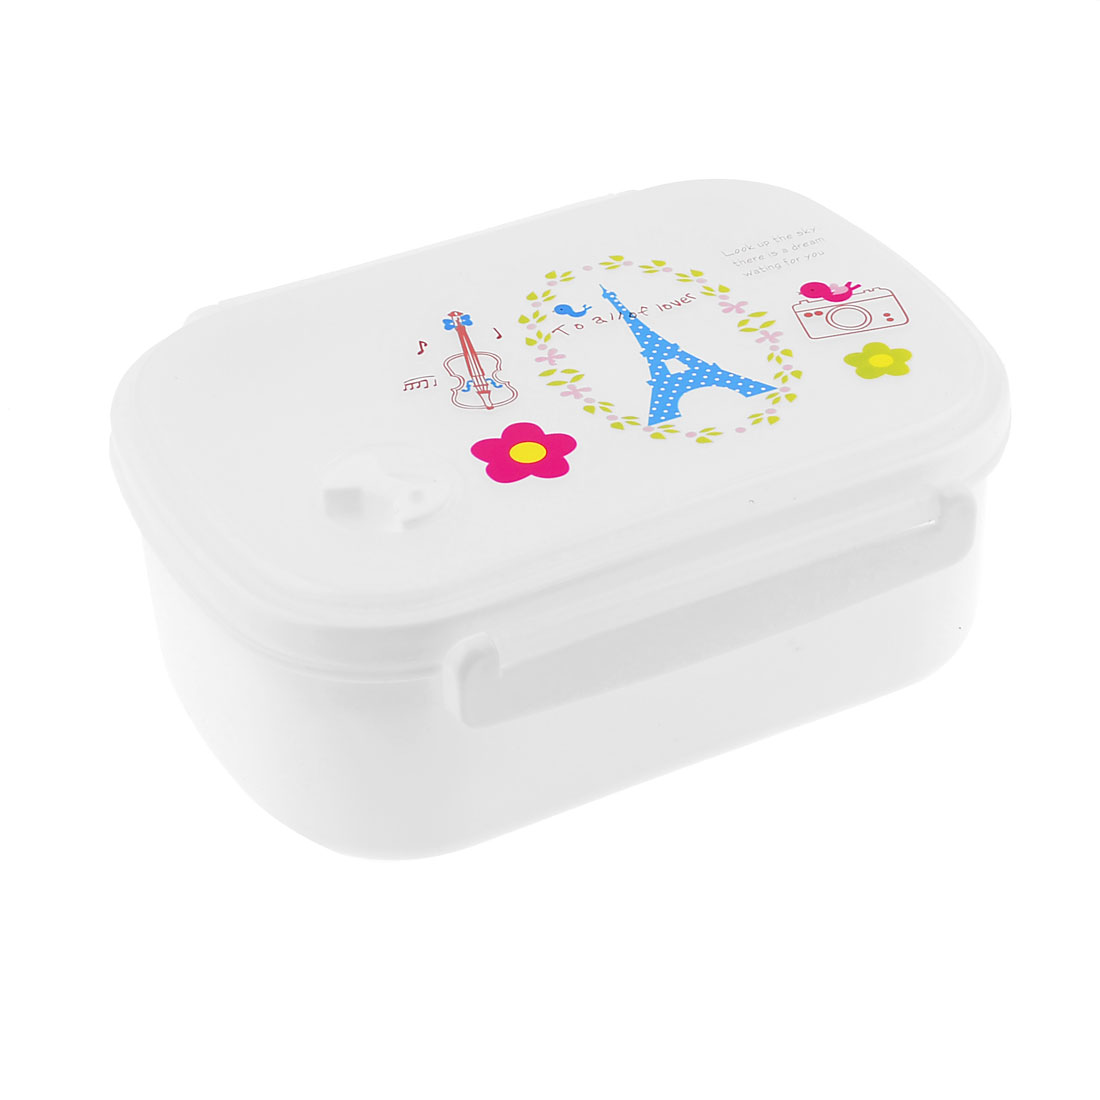 School Office White Plastic Tower Birds Letter Pattern Lunch Box Case w Spoon